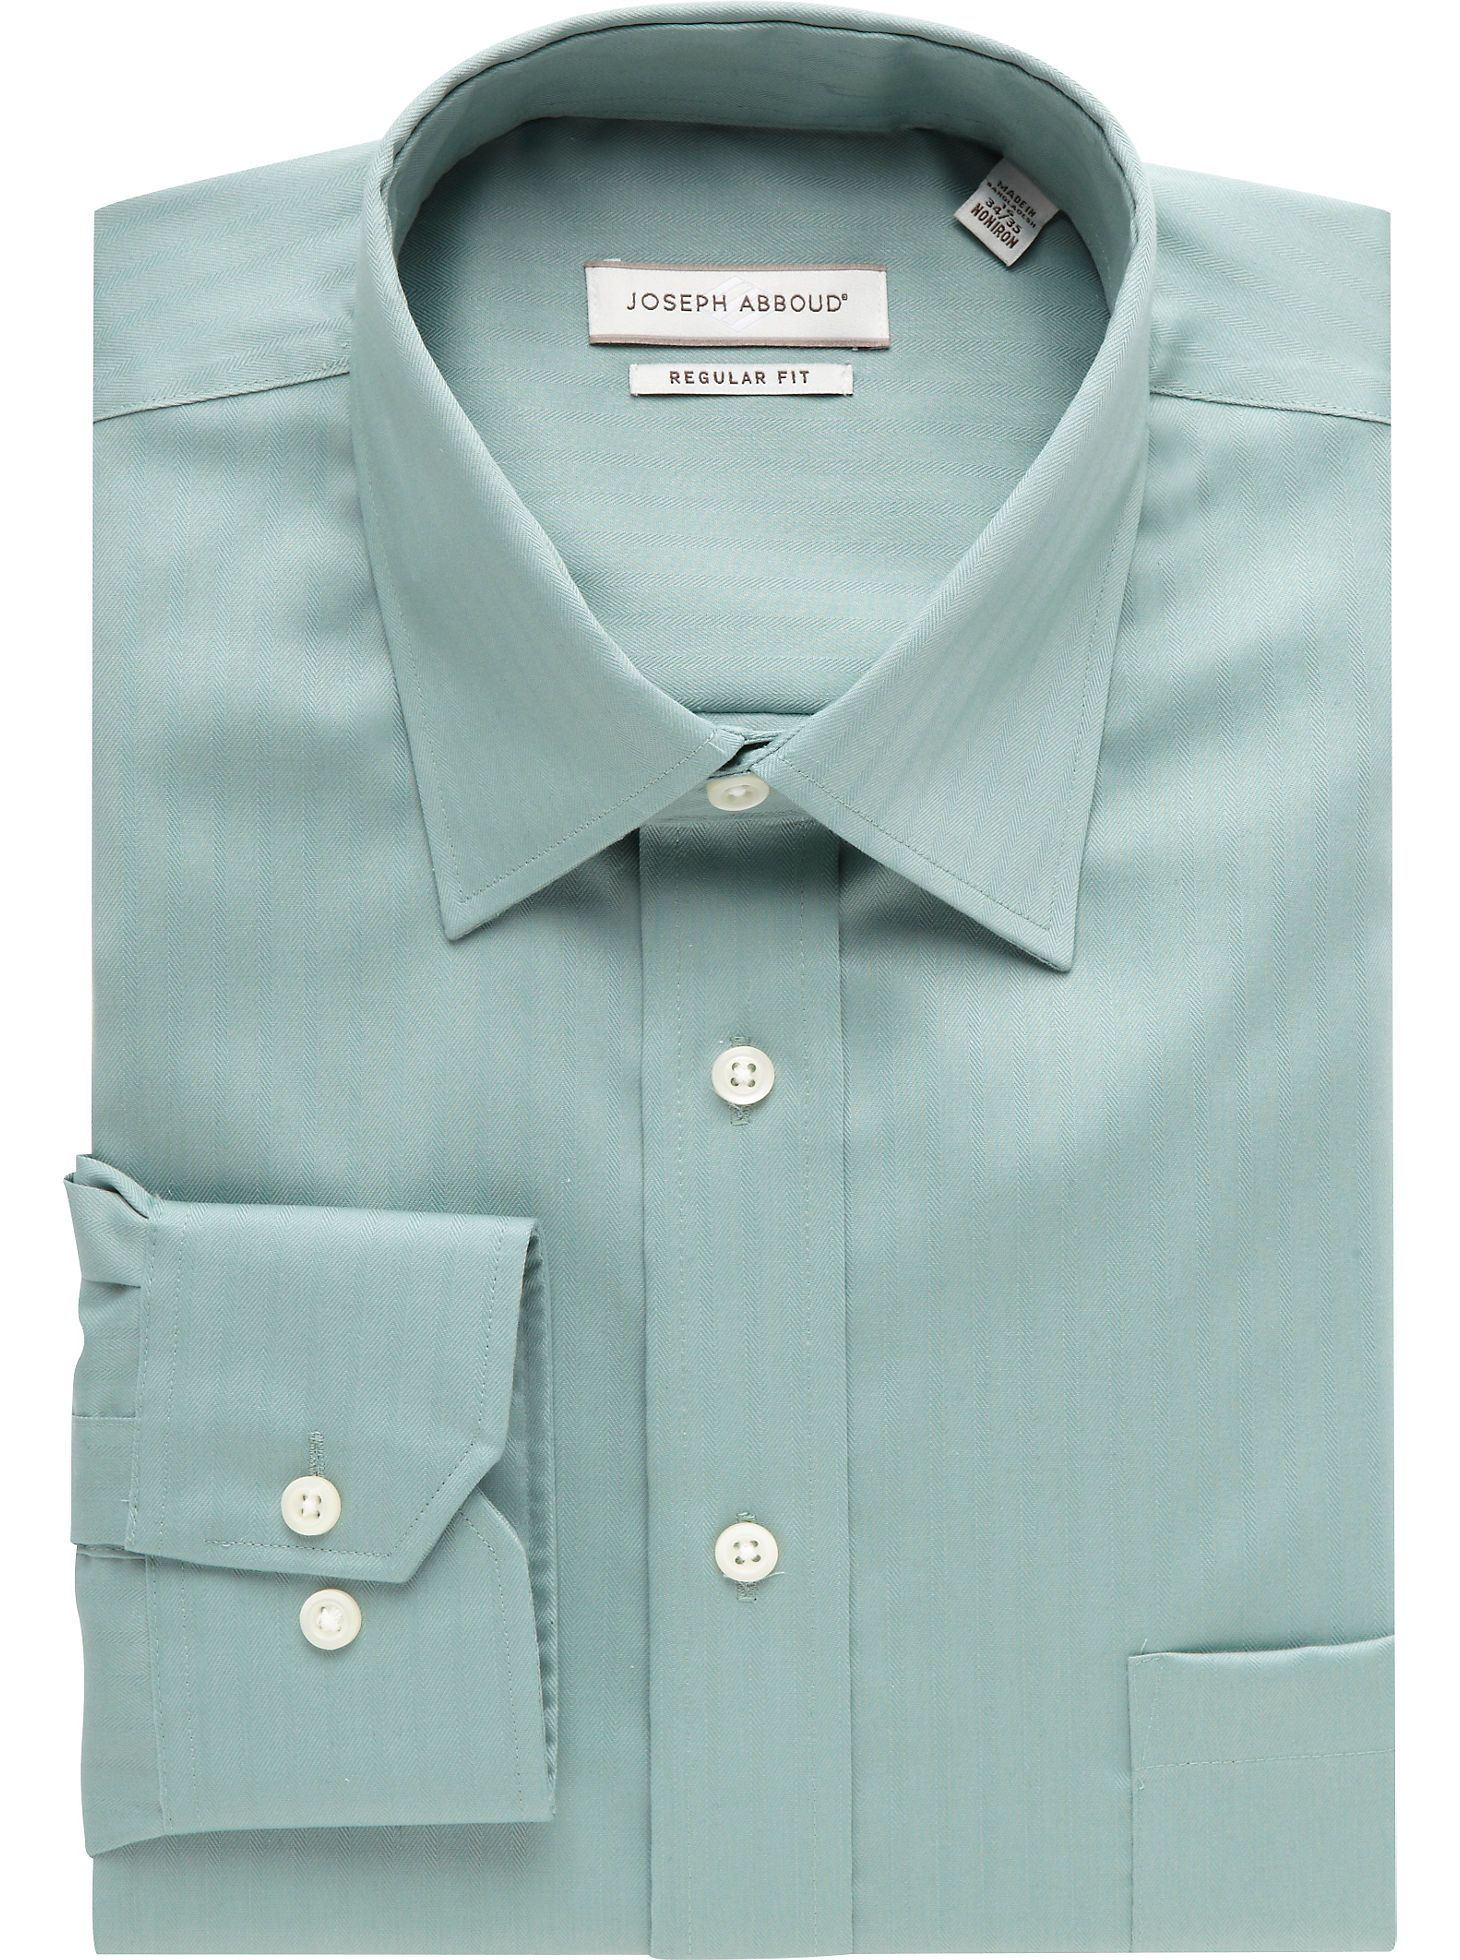 Dress Shirts Joseph Abboud Light Green Herringbone Dress Shirt